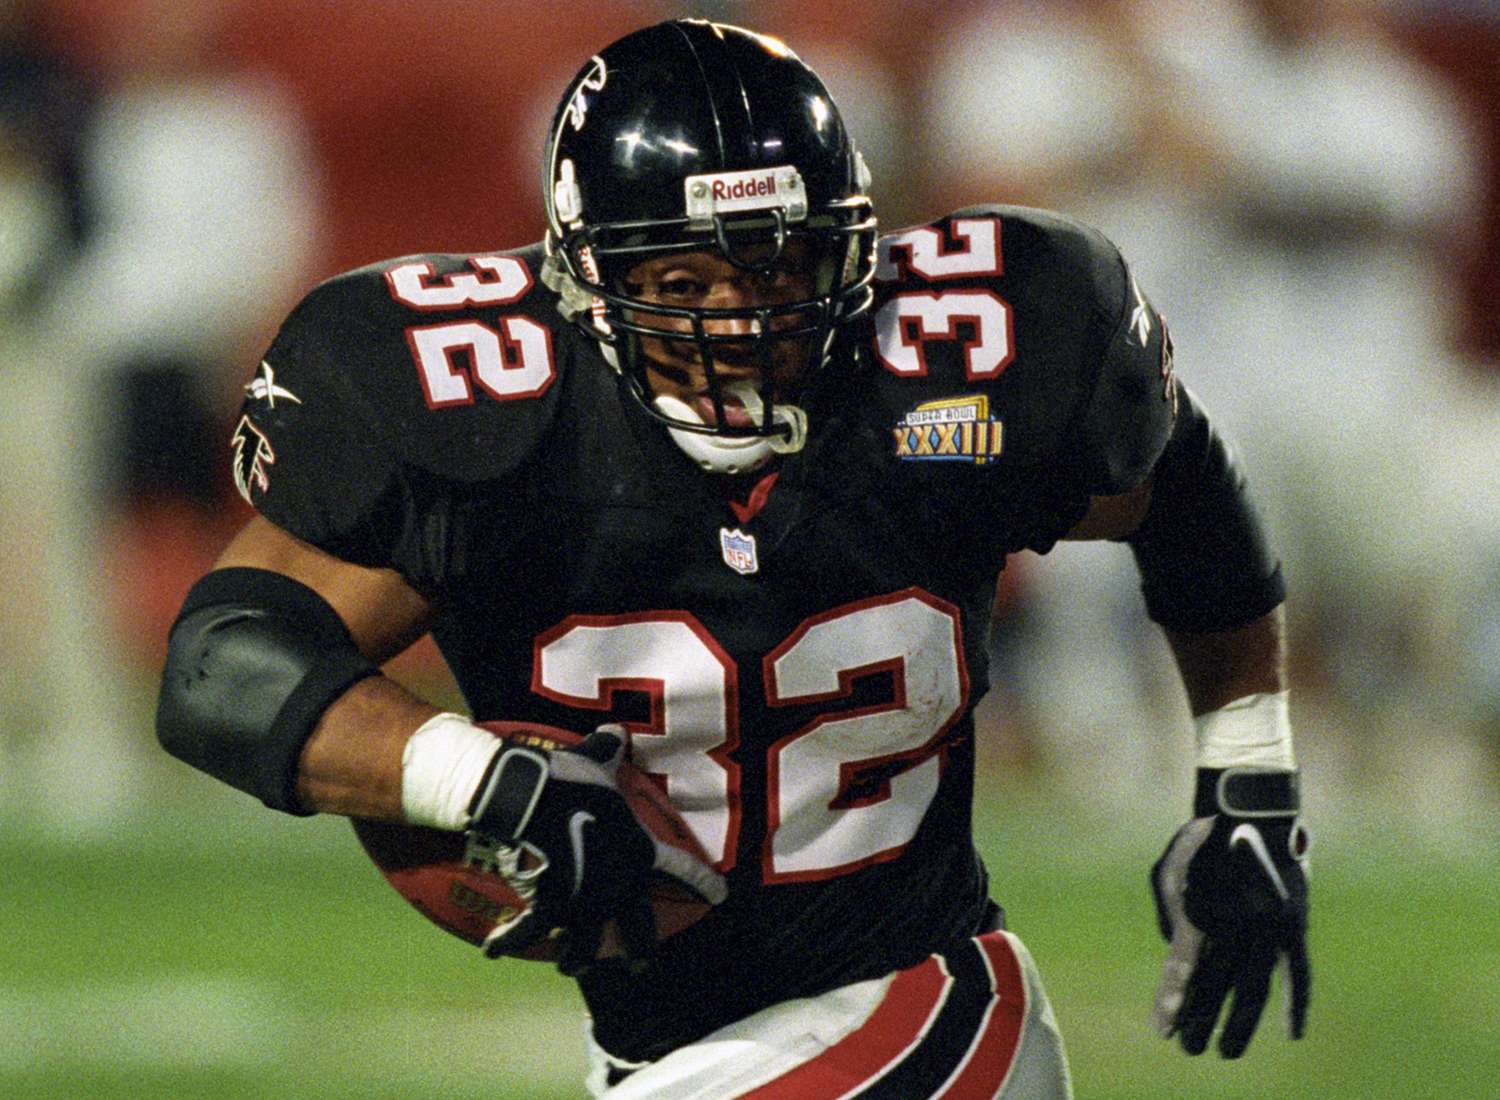 1994 NFL Draft, seventh round, Atlanta Falcons -- Anderson played eight seasons for the Falcons (1994-2001). He helped the Falcons reach Super Bowl XXXIII and was a one-time Pro Bowl selection. (National Football League)